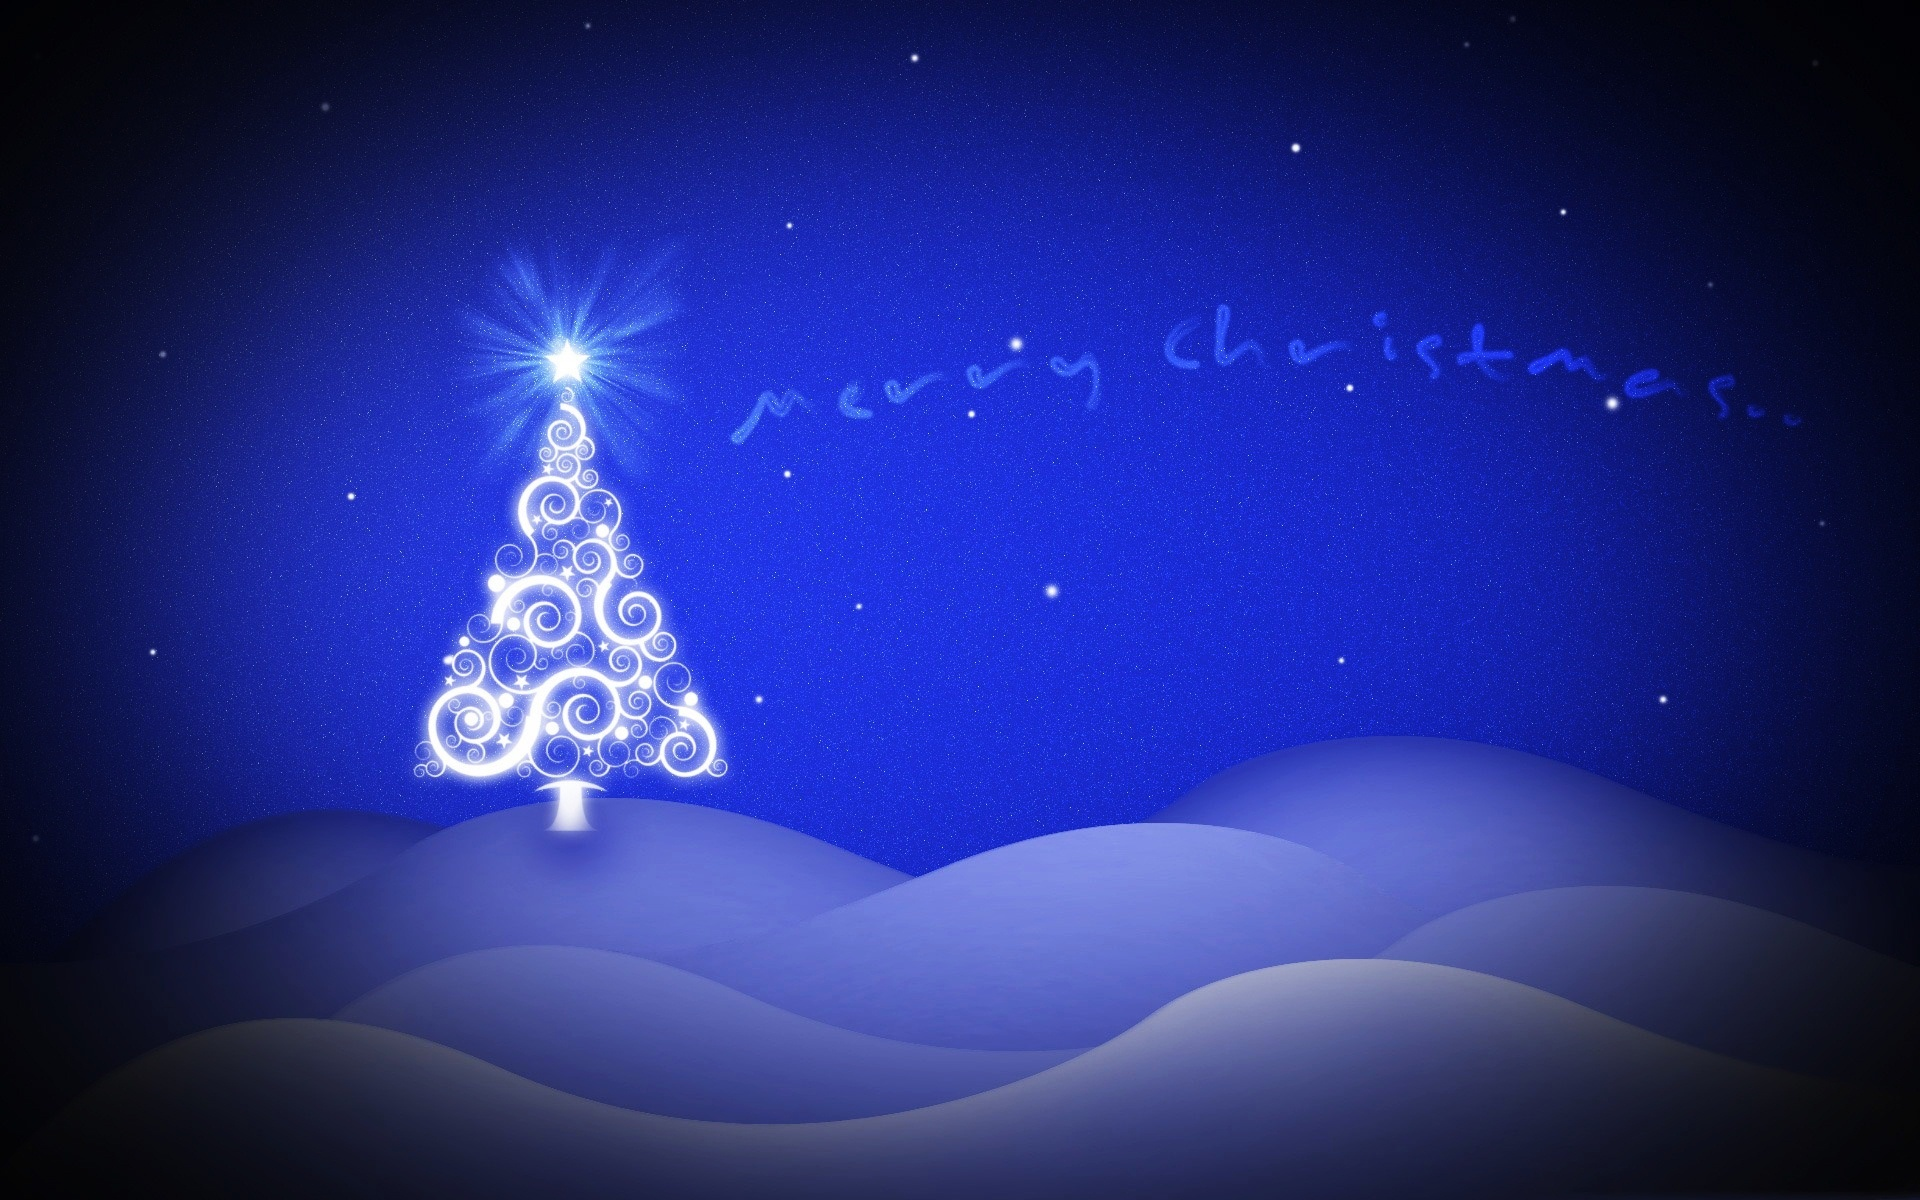 2012 Merry Christmas Wallpapers In Jpg Format For Free Download